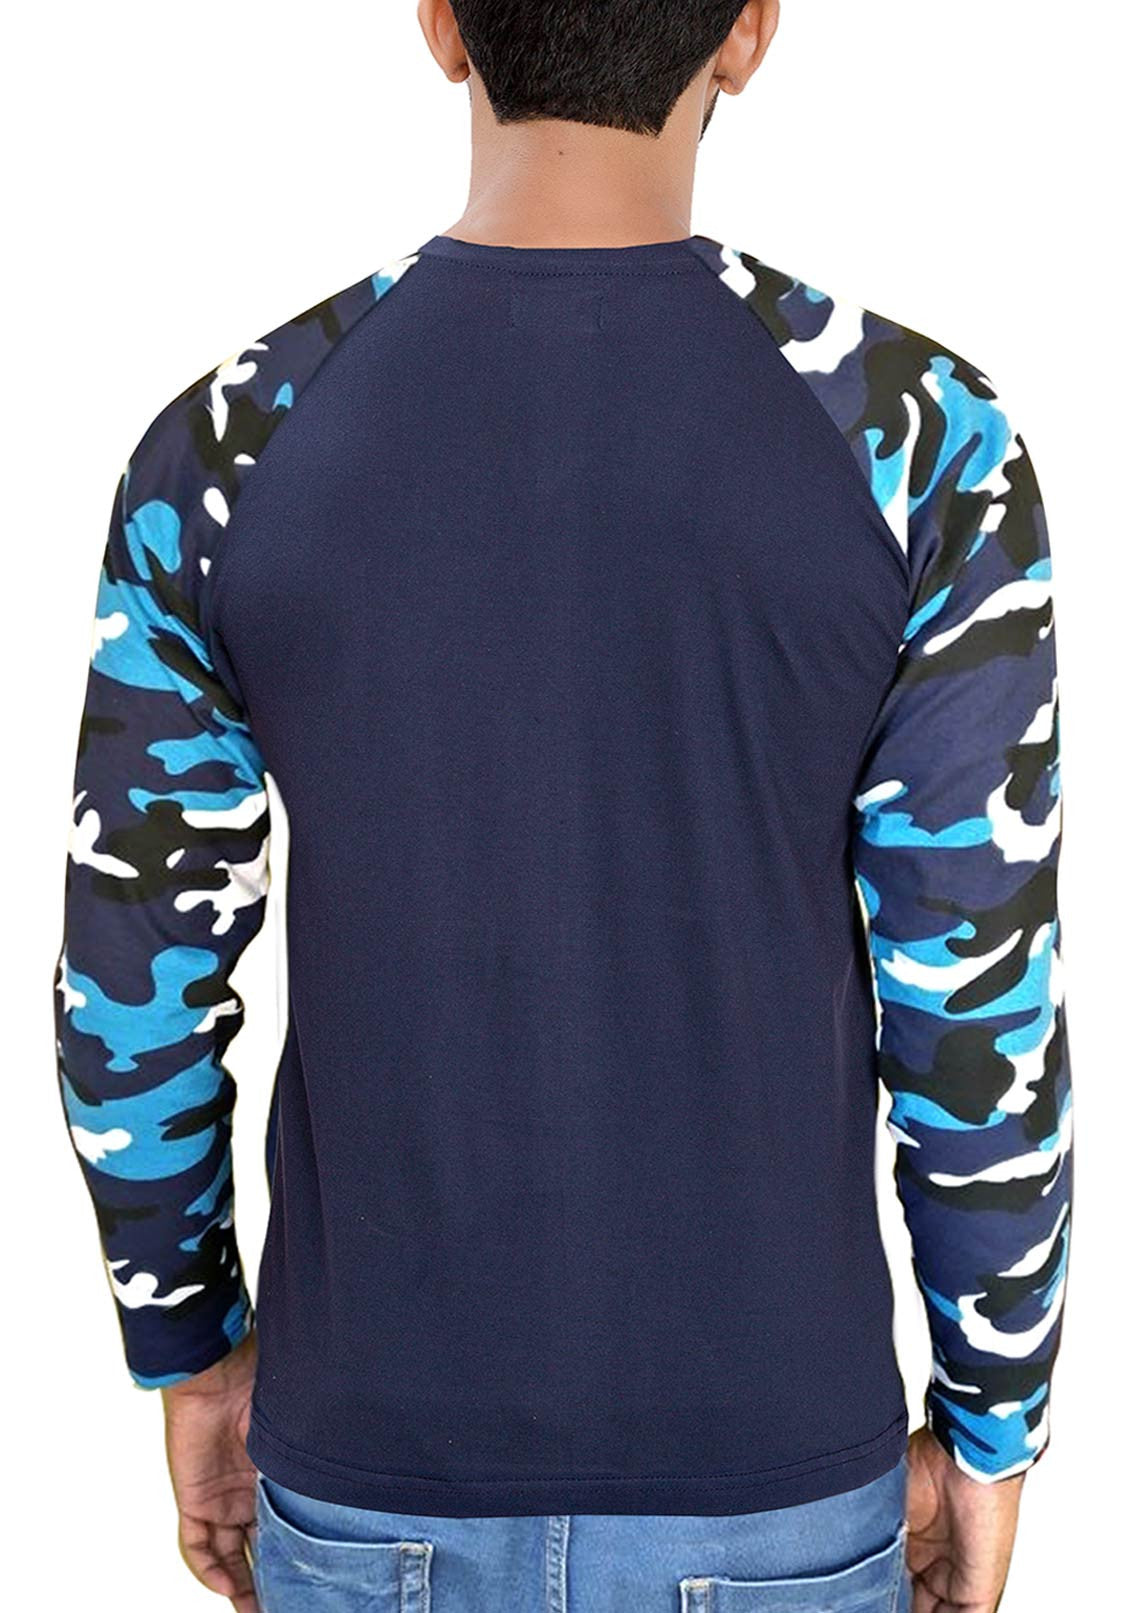 2e91f5fd Army Blue Camouflage Raglan Full Sleeves T-Shirt | Printed Blue Camo ...